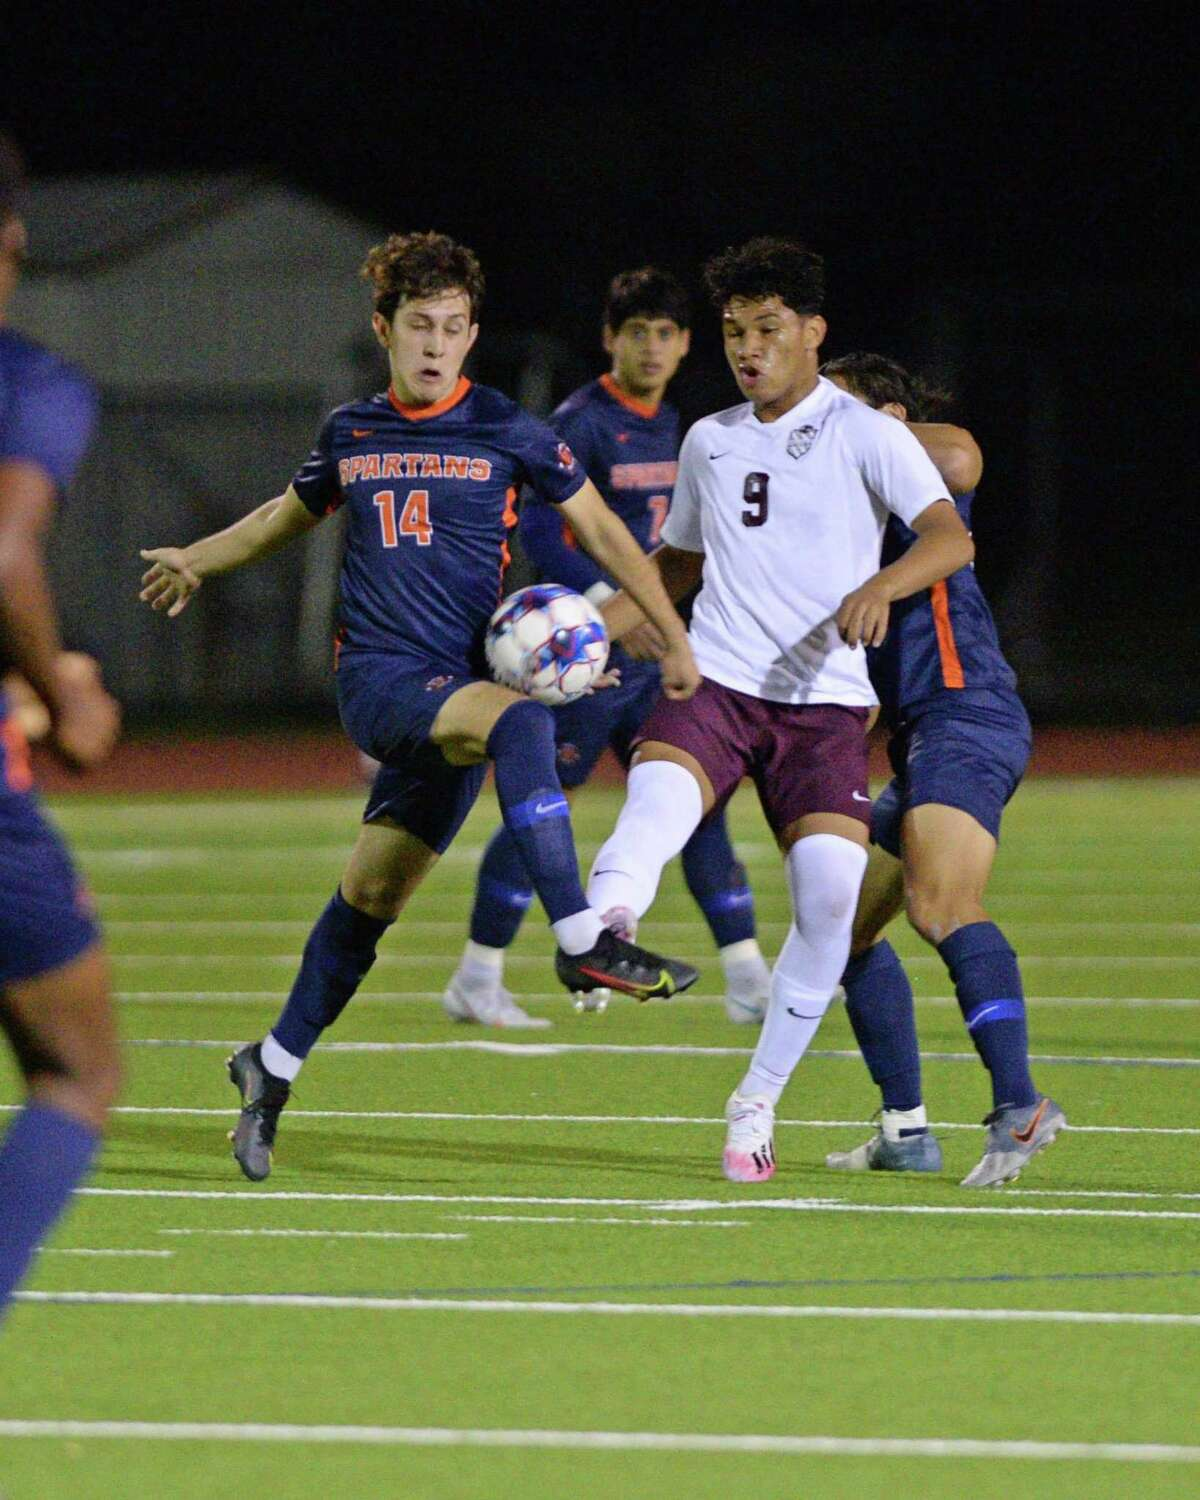 Christian Gonzalez (14) of Seven Lakes and Dany Vargas (9) of Cinco Ranch compete for a ball during the first half of a 6A-III District 19 soccer match between the Seven Lakes Spartans and the Cinco Ranch Cougars on Friday, March 12, 2021 at Seven Lakes HS, Katy, TX.